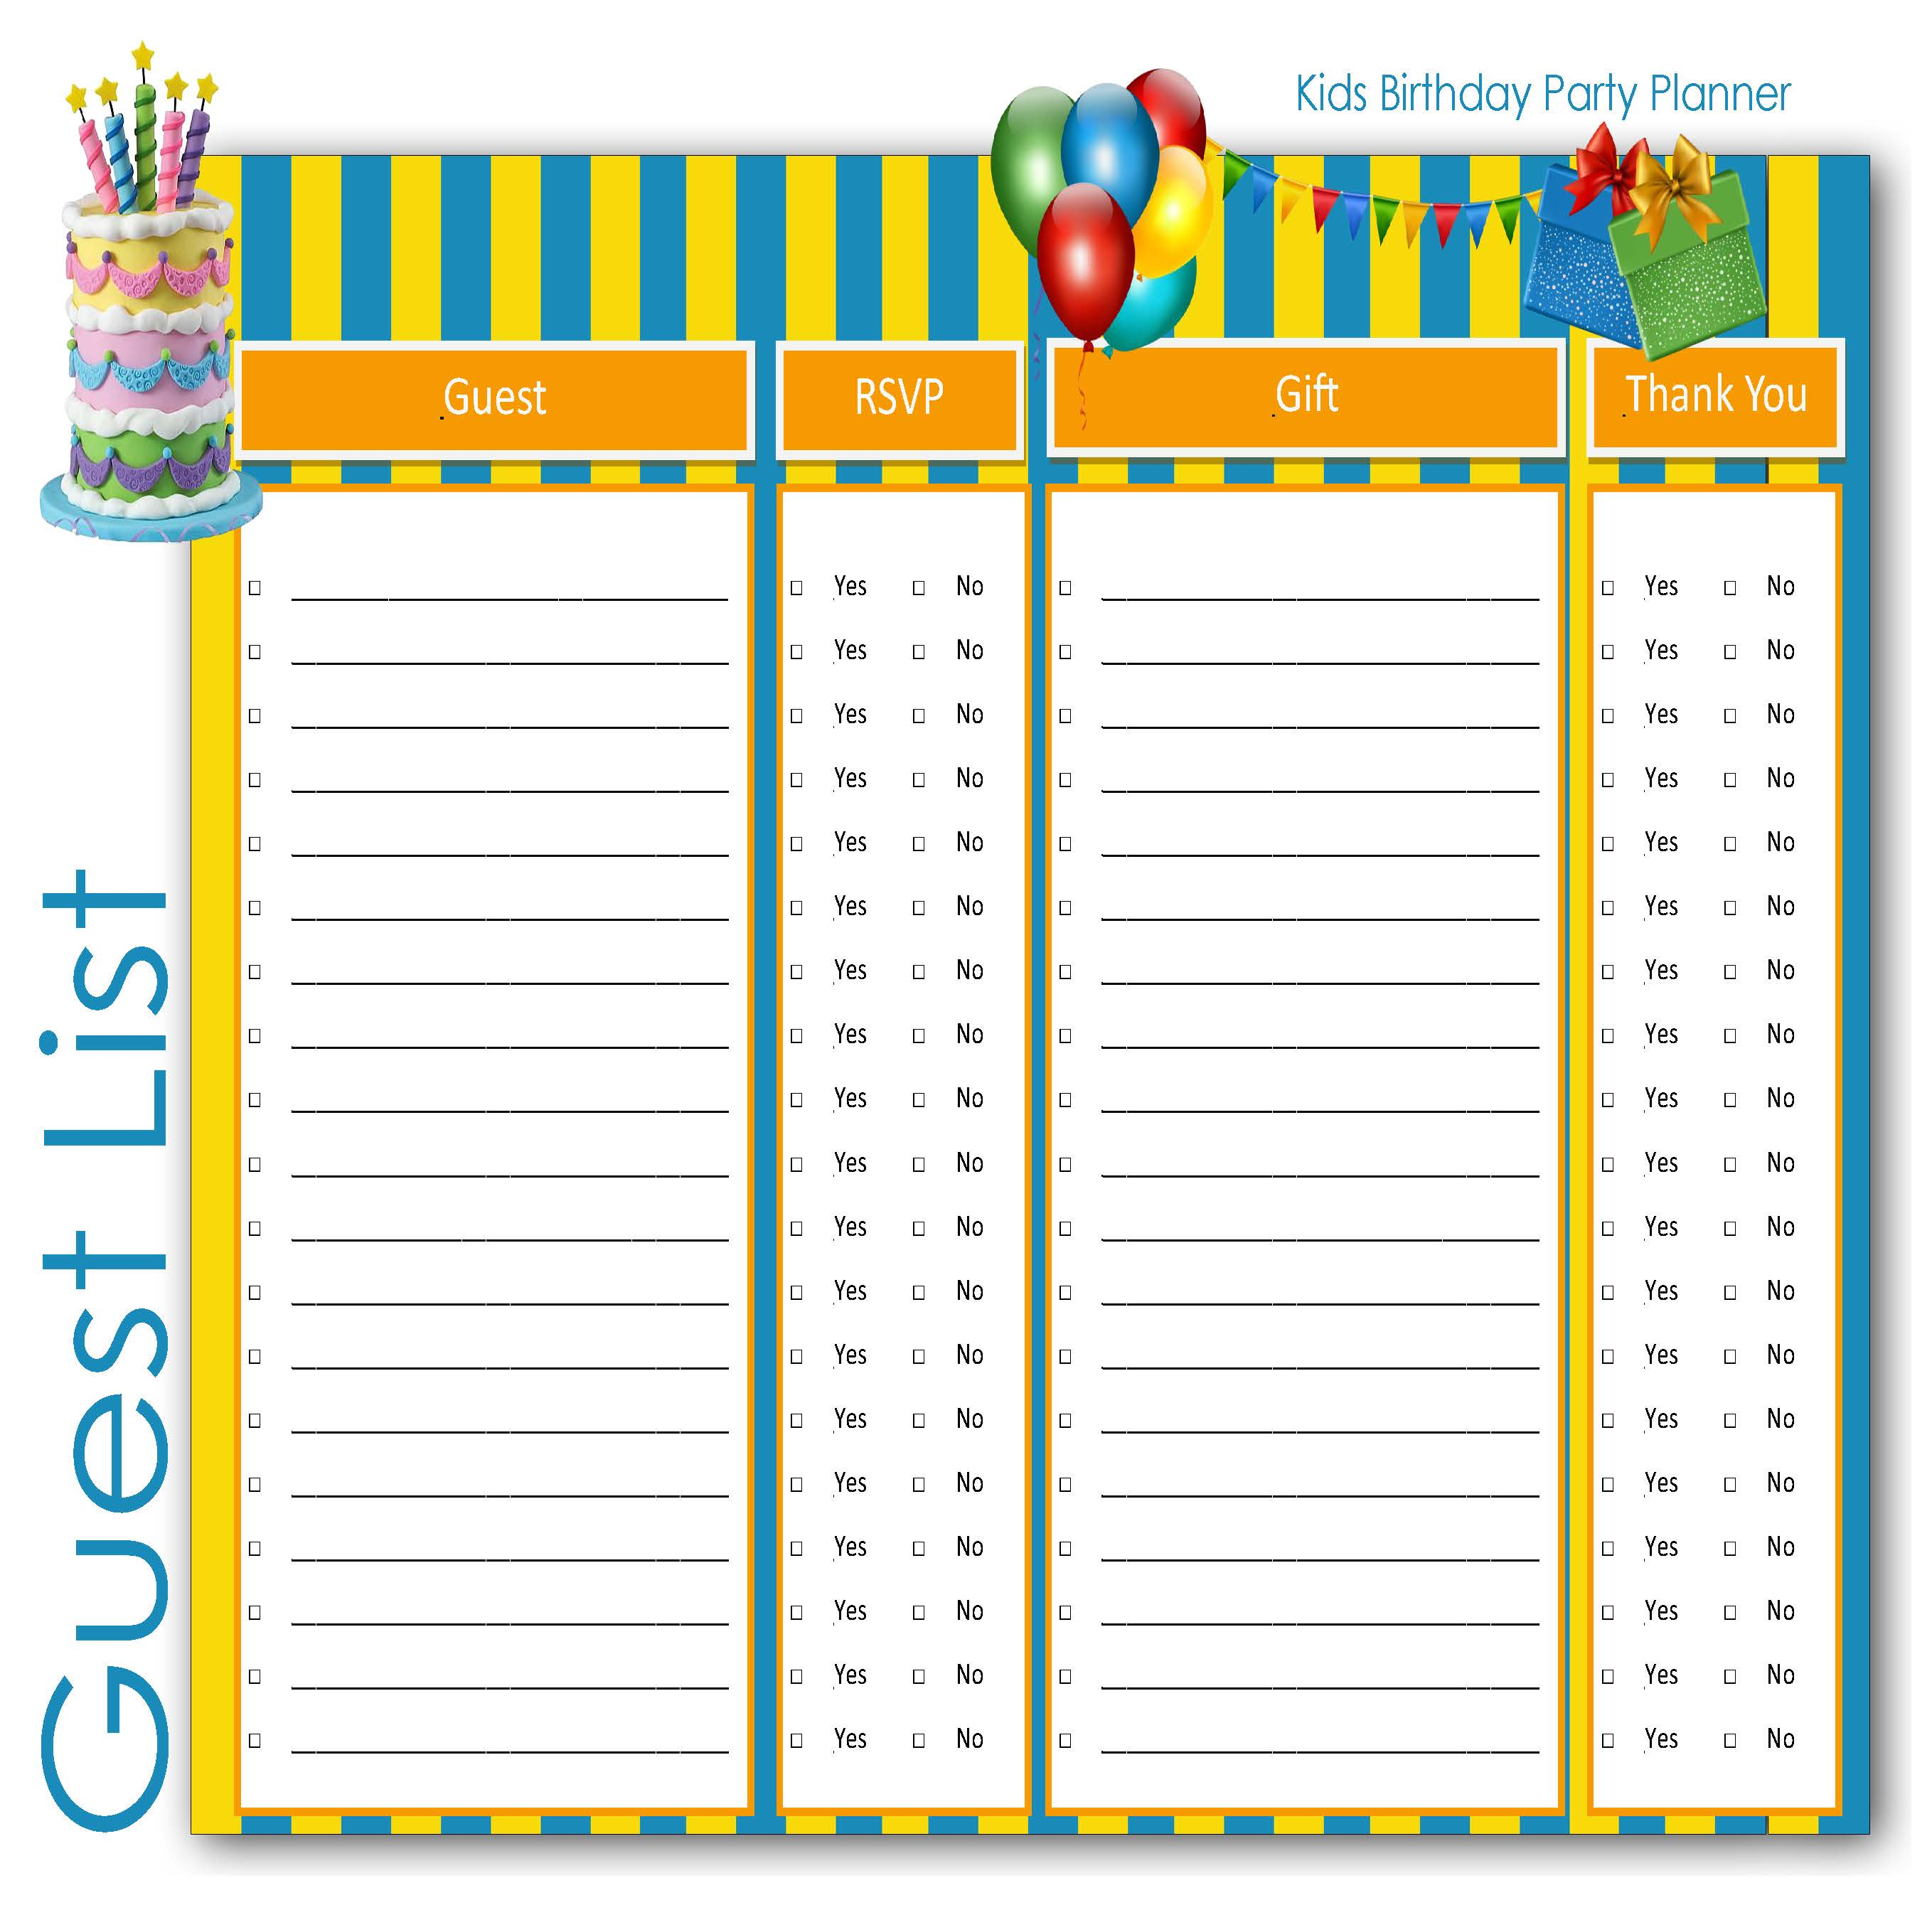 Children Birthday Party Planner Guest List For Kids